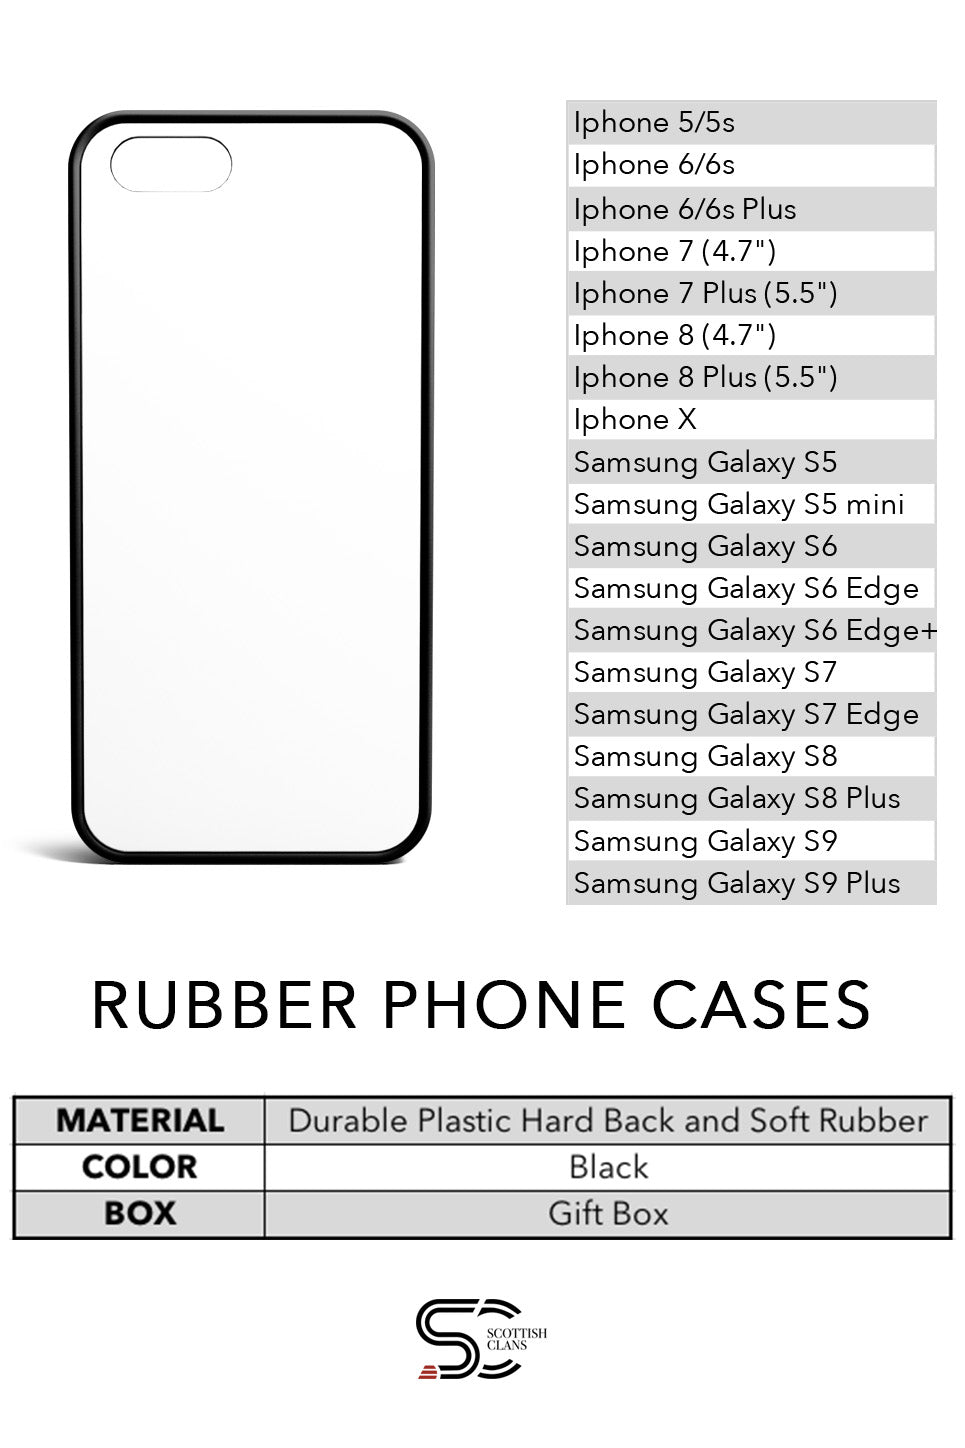 Rubber Phone Cases - Phone Covers